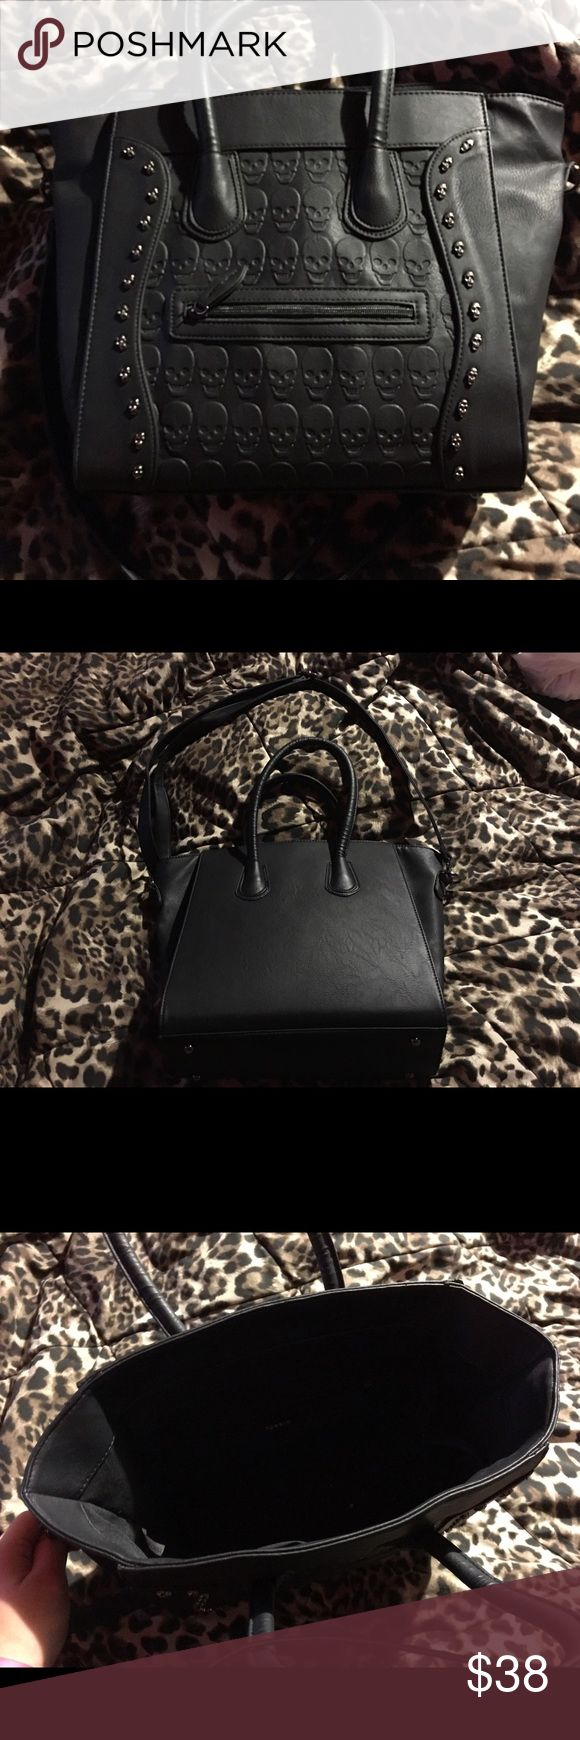 Torrid Skull Purse Black handbag with skull details. Has a handle and a shoulder strap. One big pocket with smaller pockets on the inside and one small pocket on the outside. torrid Bags Totes